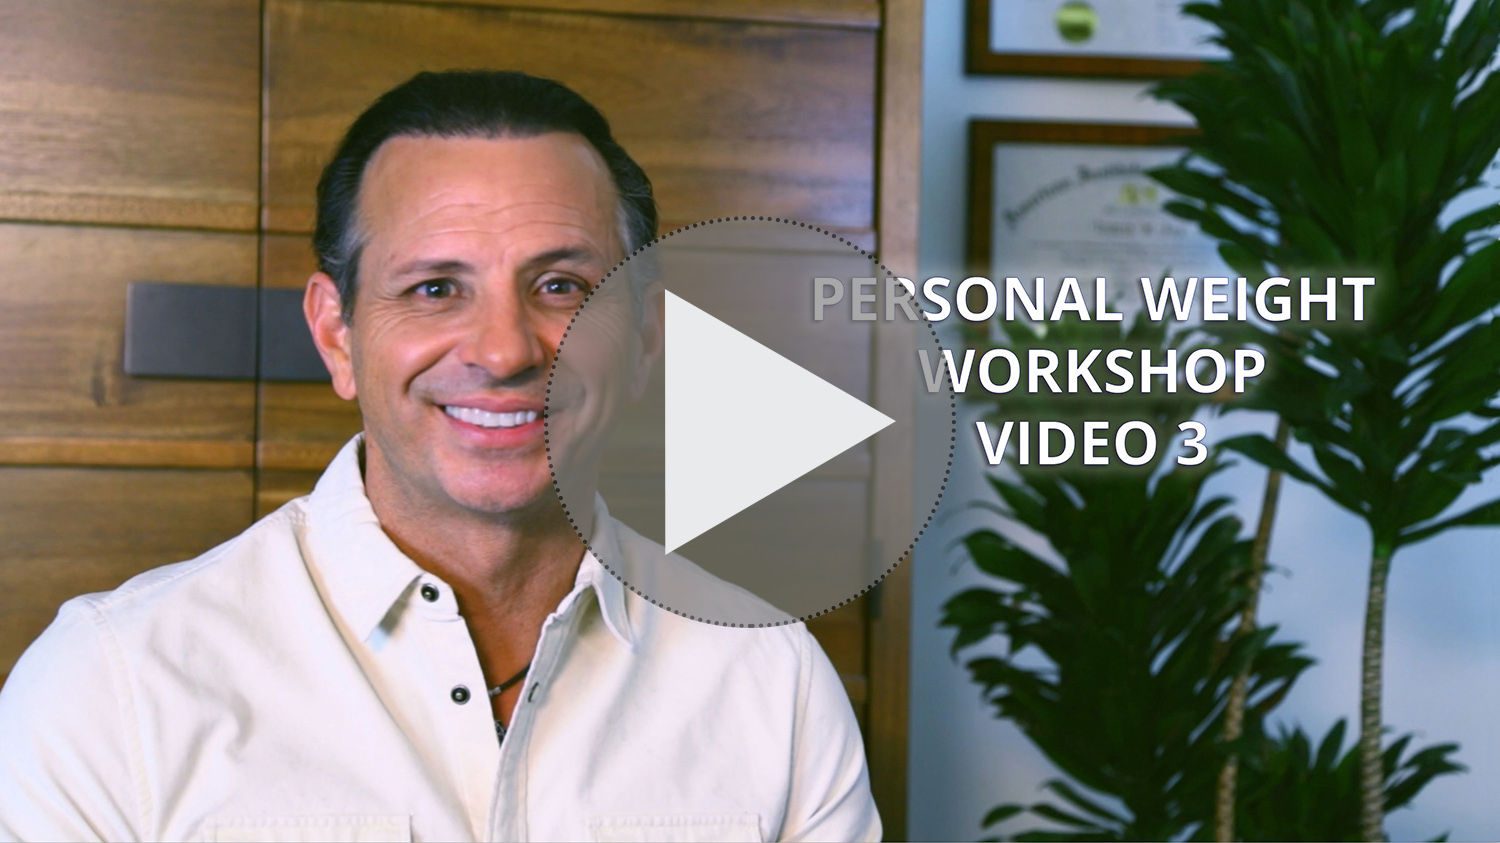 FREE Personal Weight Workshop Video 3 by Travis Fox